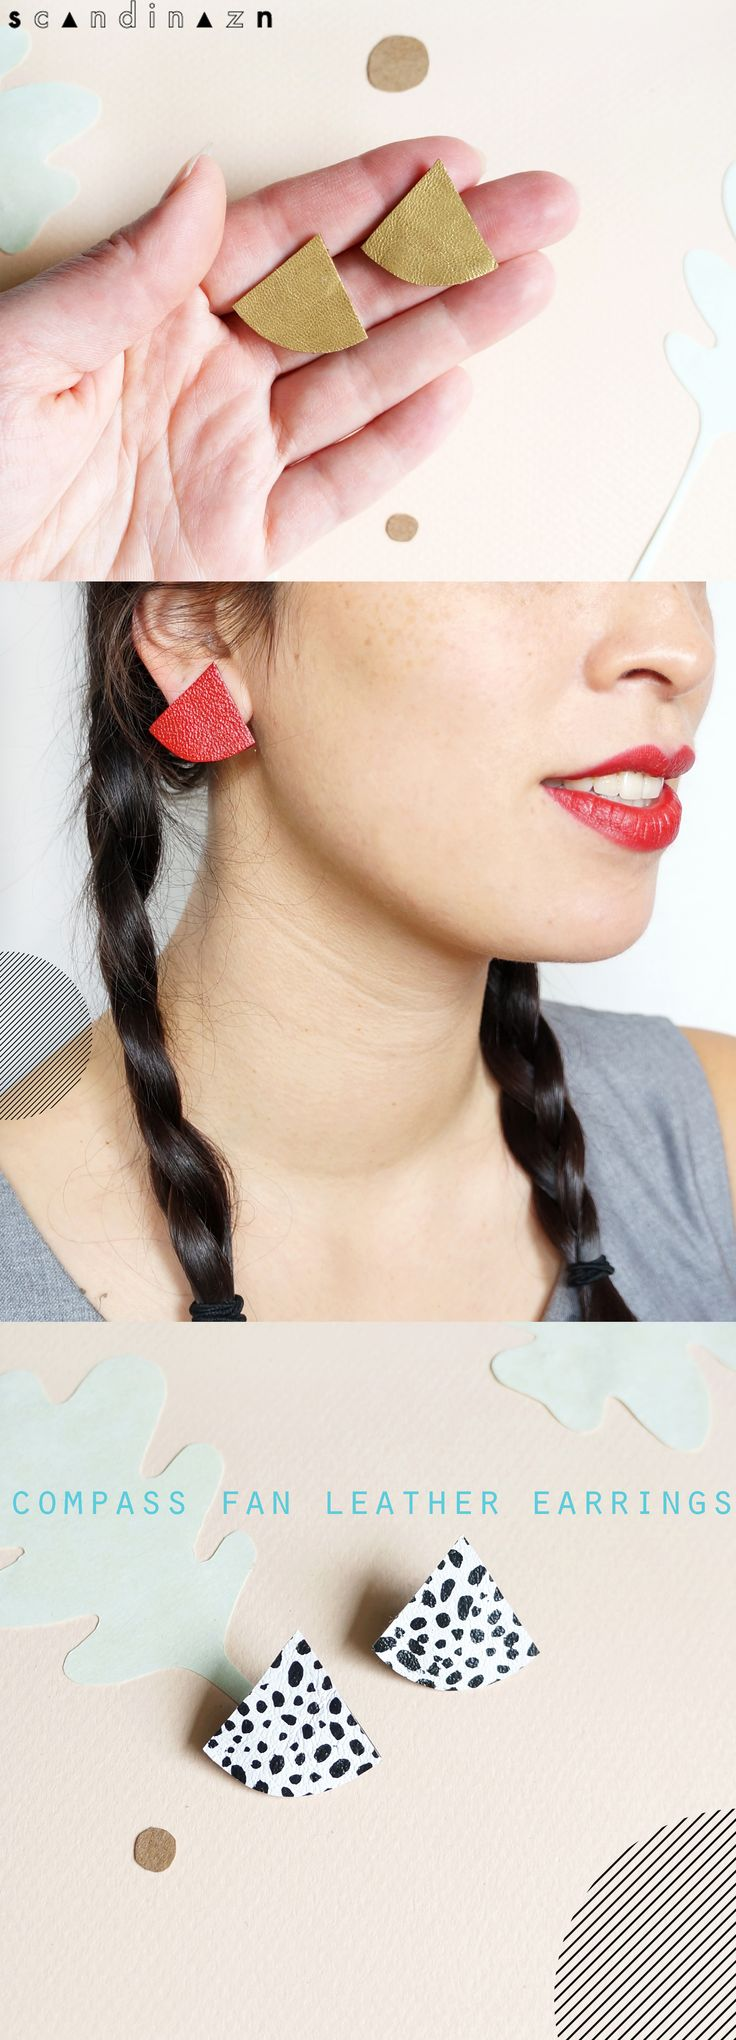 Statement fan leather earrings! Made from second hand leather garments.     + + +   Scandinazn